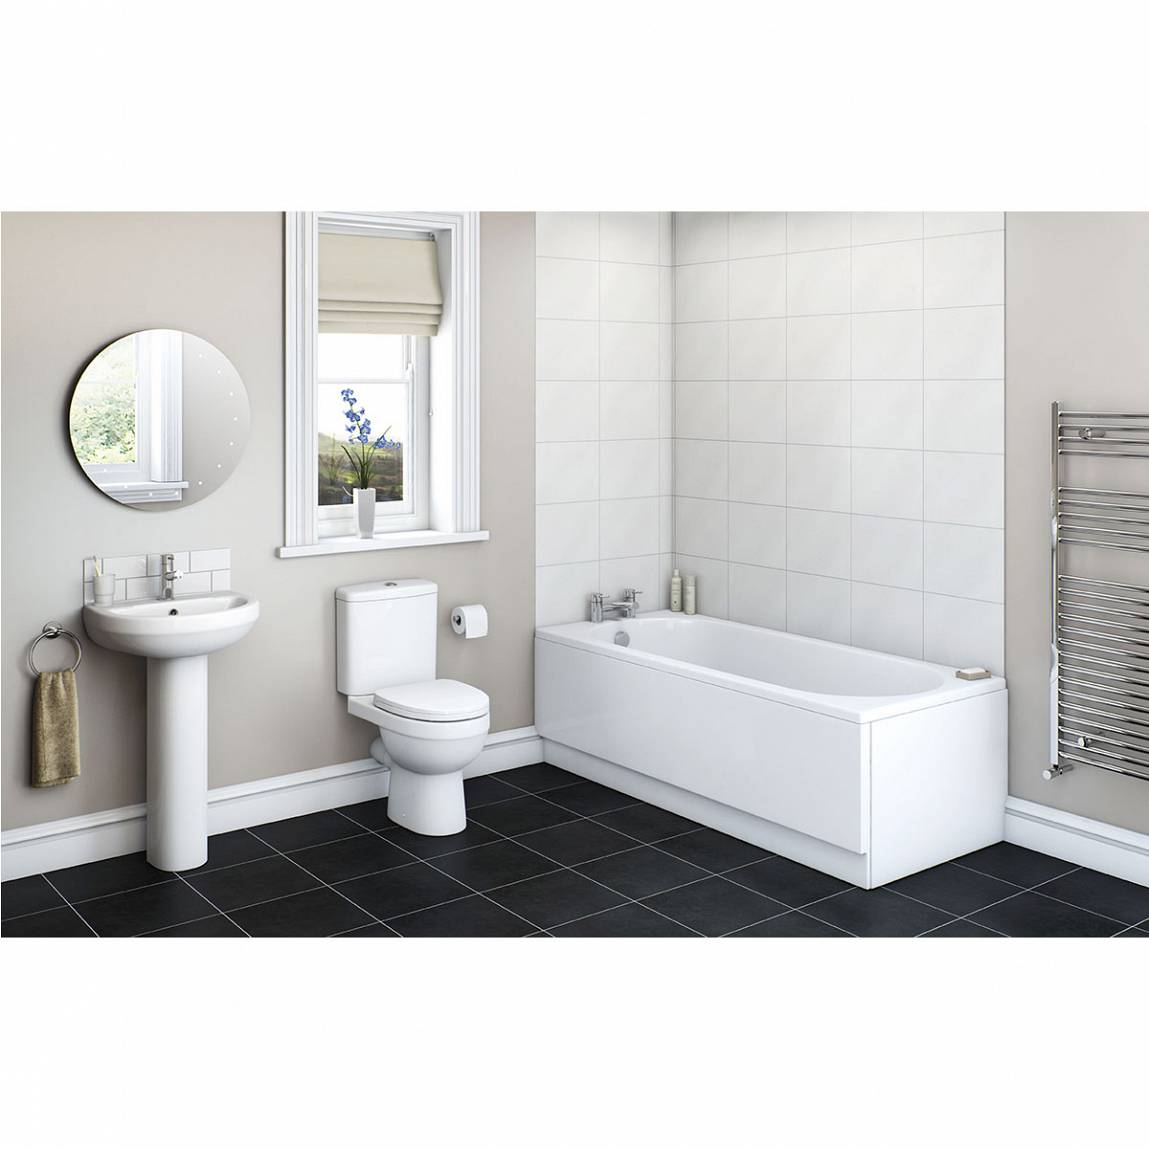 Image of Energy Bathroom Set with Richmond 1800 x 800 Bath Suite